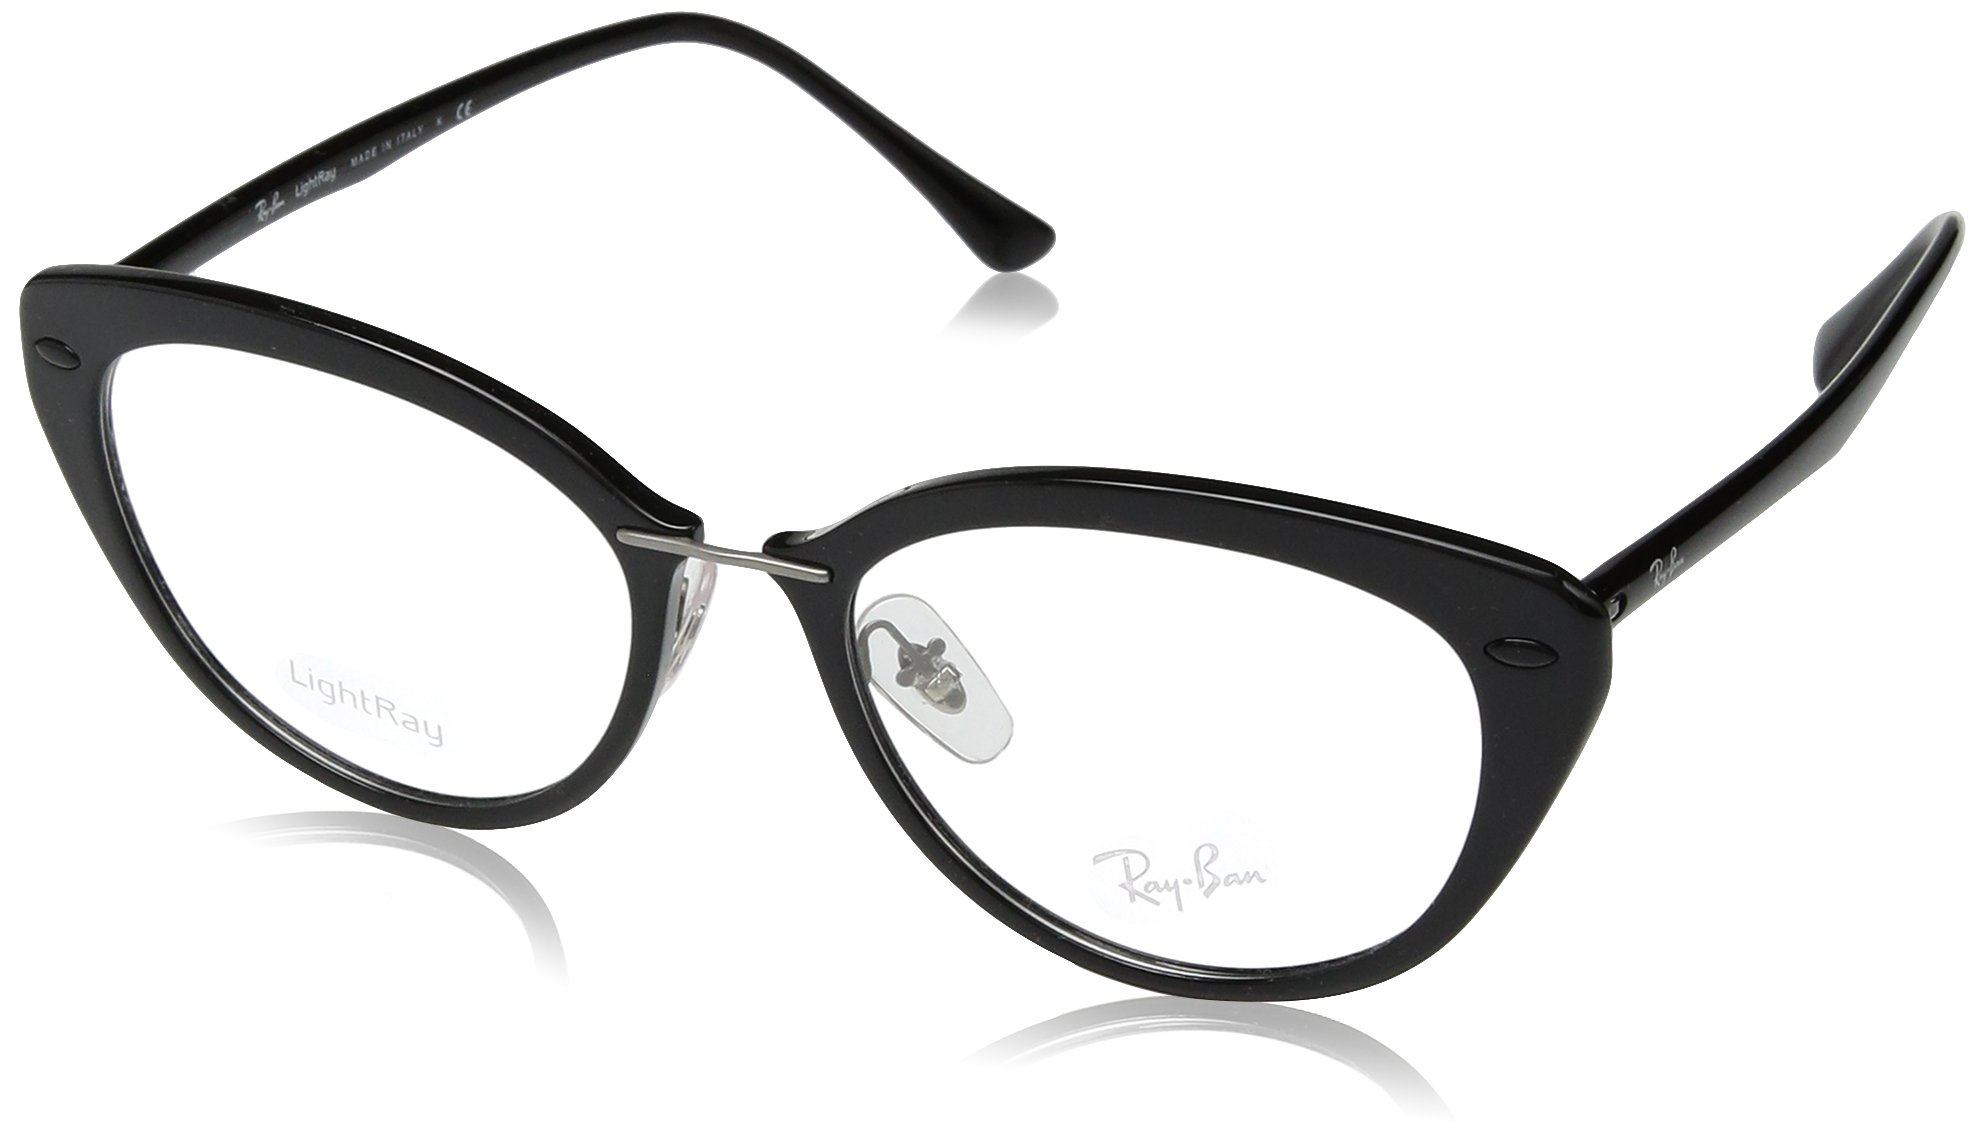 Ray-Ban RX7088 Eyeglass Frames 2000-52 - Shiny Black RX7088-2000-52 by Ray-Ban